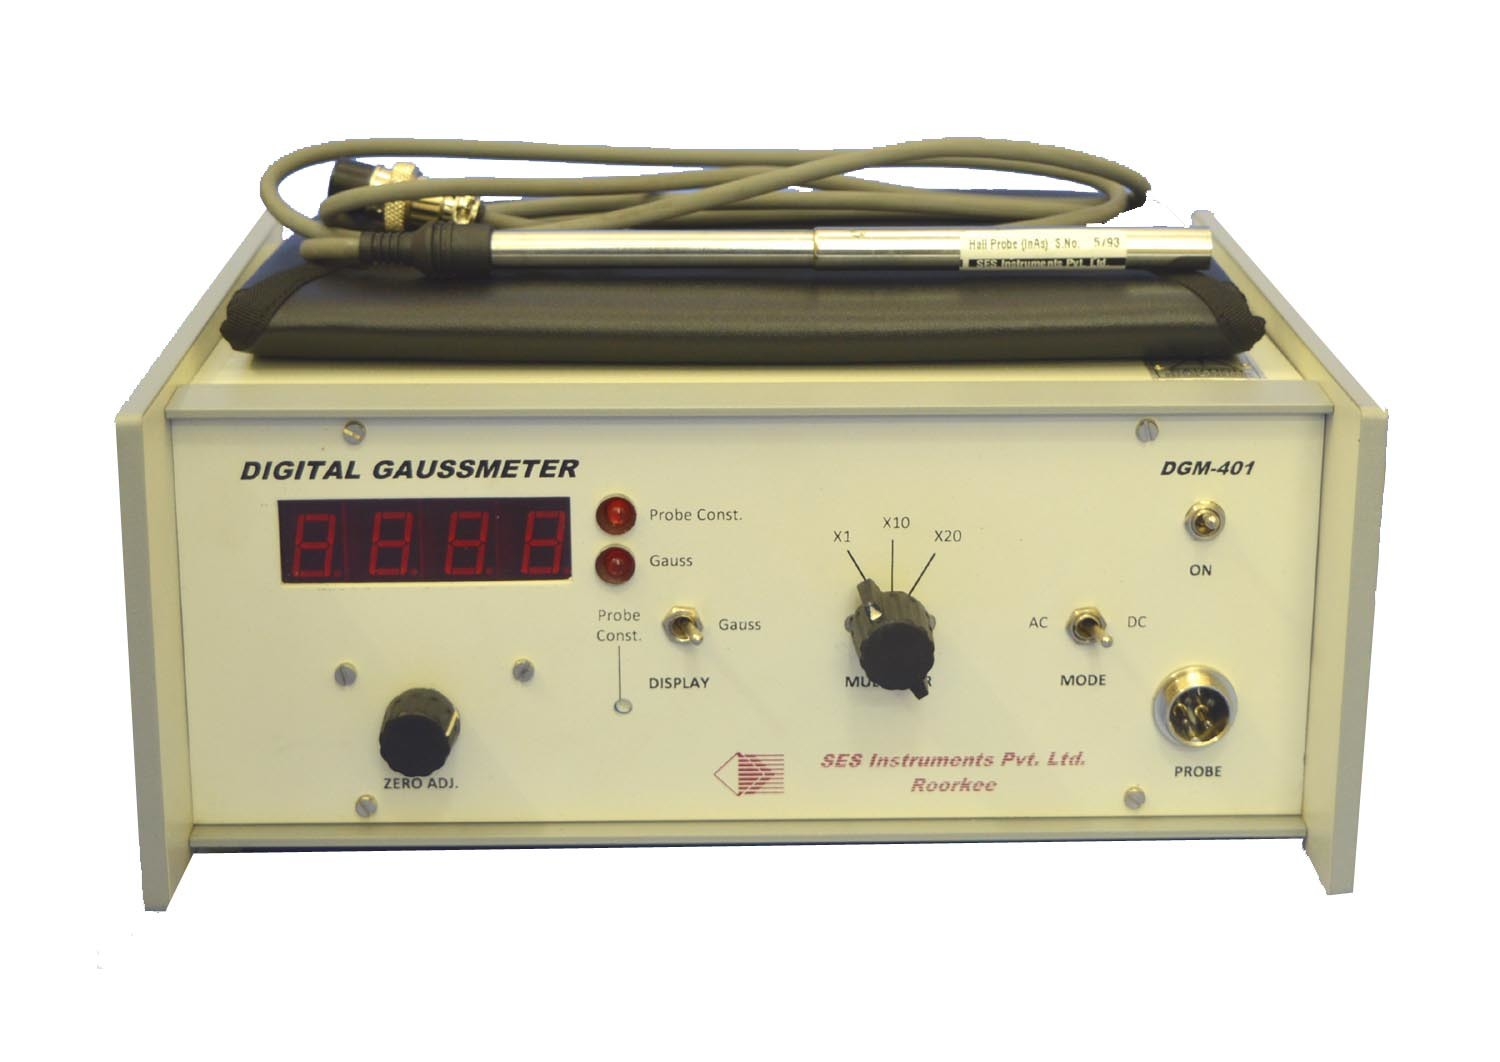 Digital Gaussmeter, DGM-401